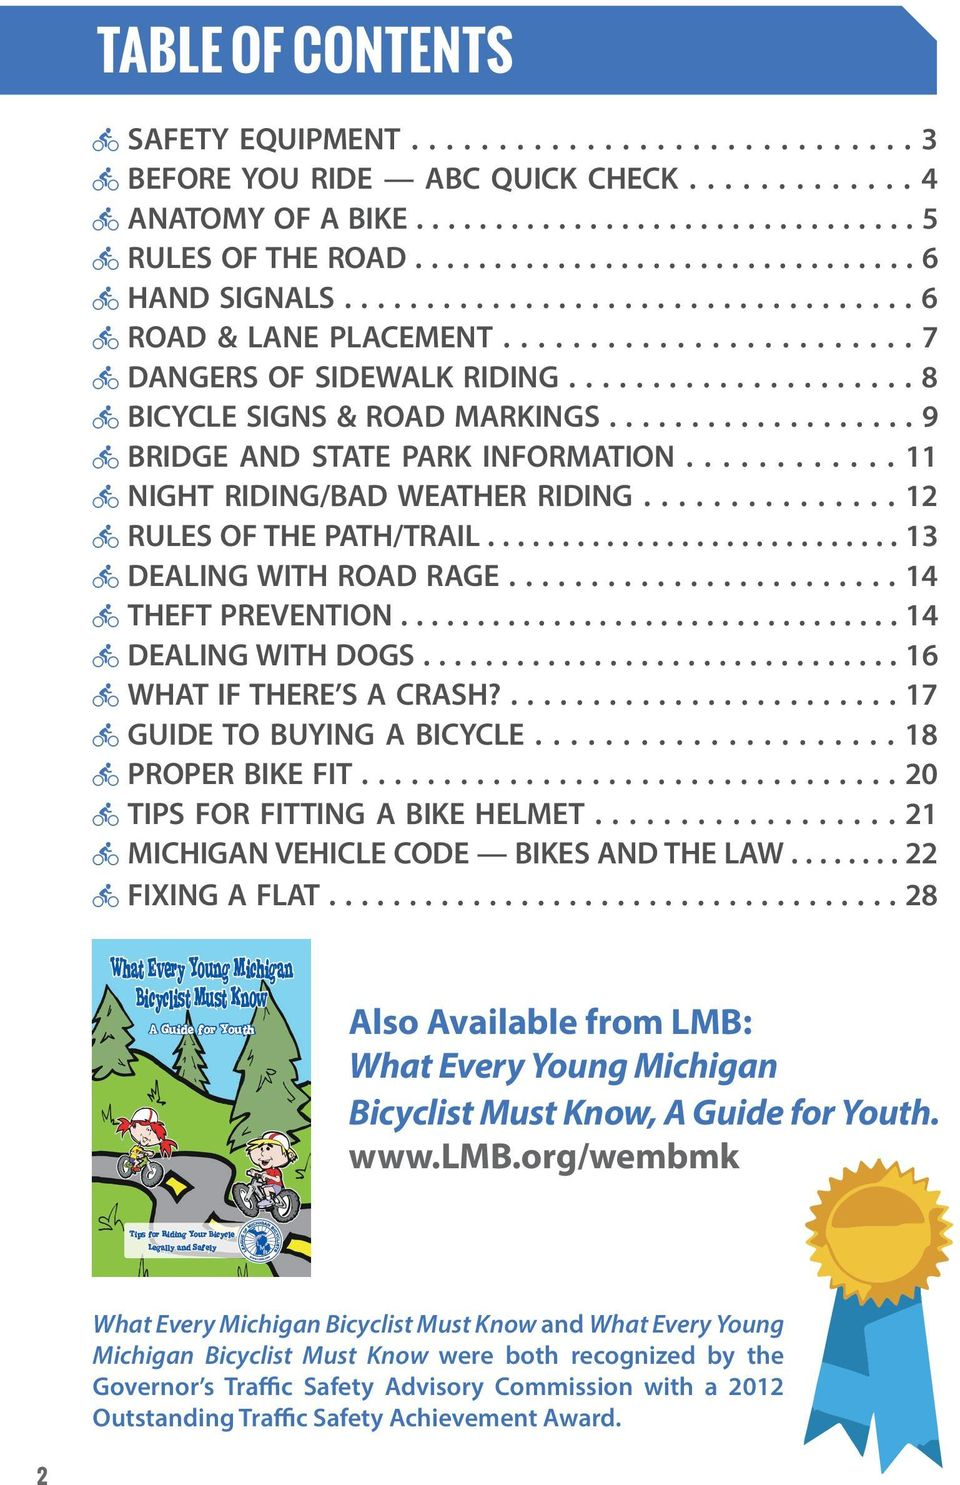 .................. 9 BRIDGE AND STATE PARK INFORMATION............ 11 NIGHT RIDING/BAD WEATHER RIDING............... 12 RULES OF THE PATH/TRAIL............................ 13 DEALING WITH ROAD RAGE.